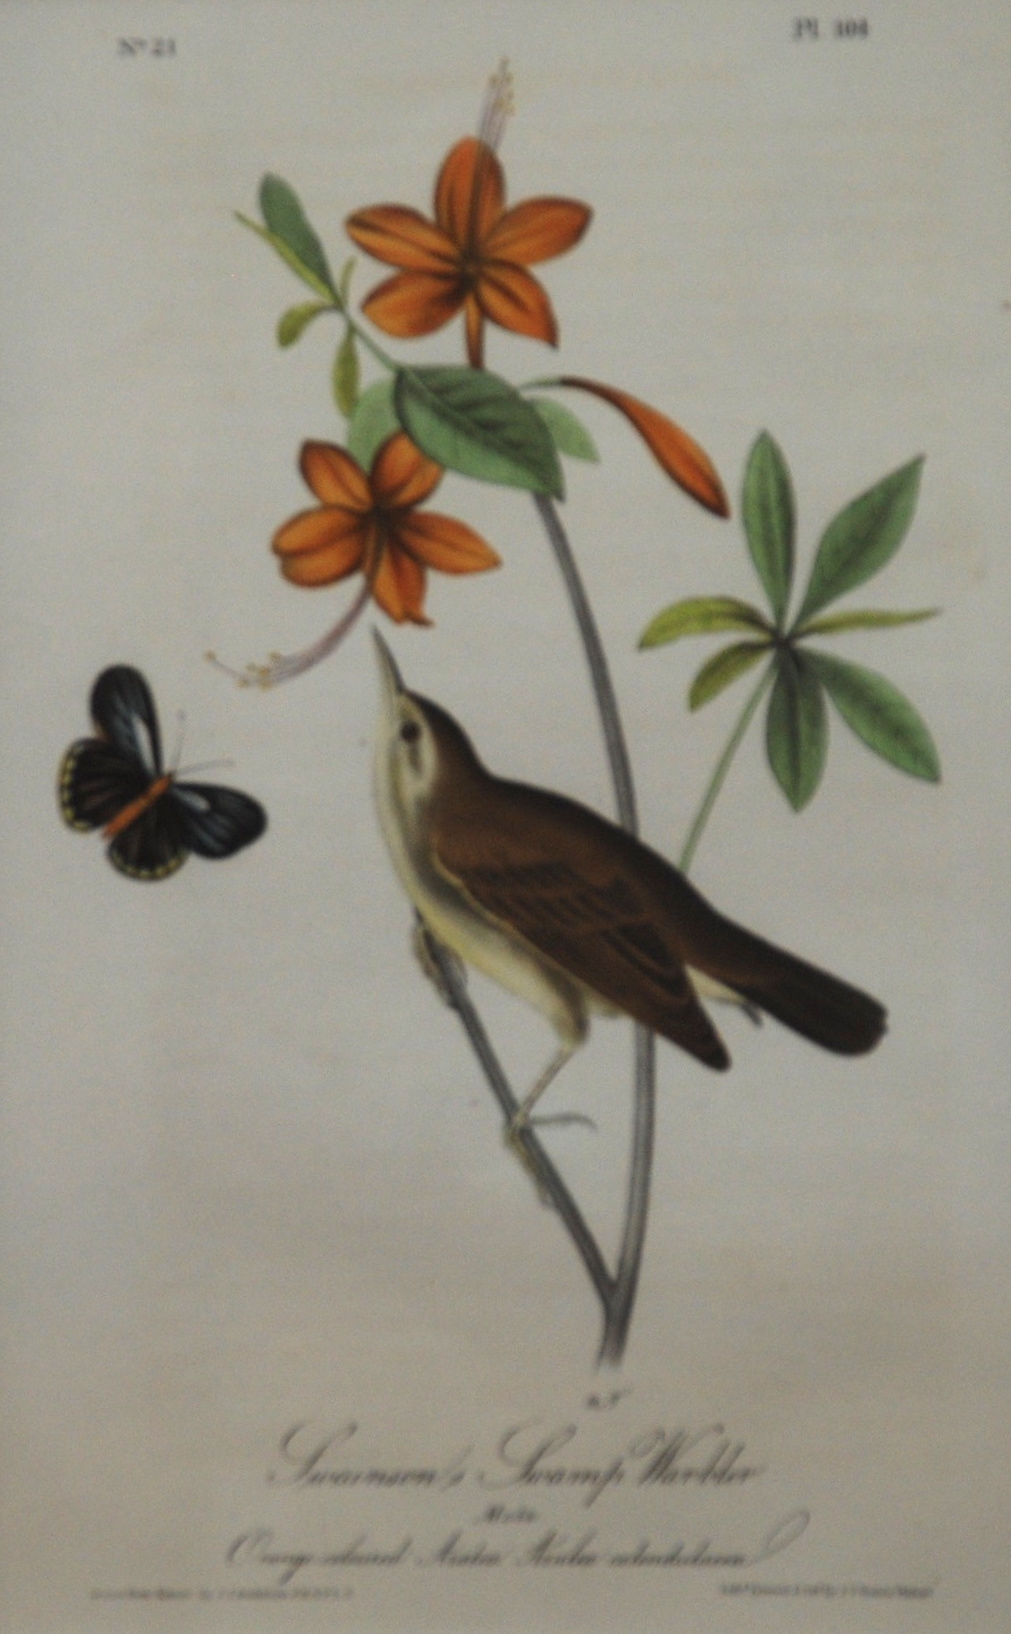 John James Audubon, Swainsons Swamp Warbler, No. 21 Pl 104,